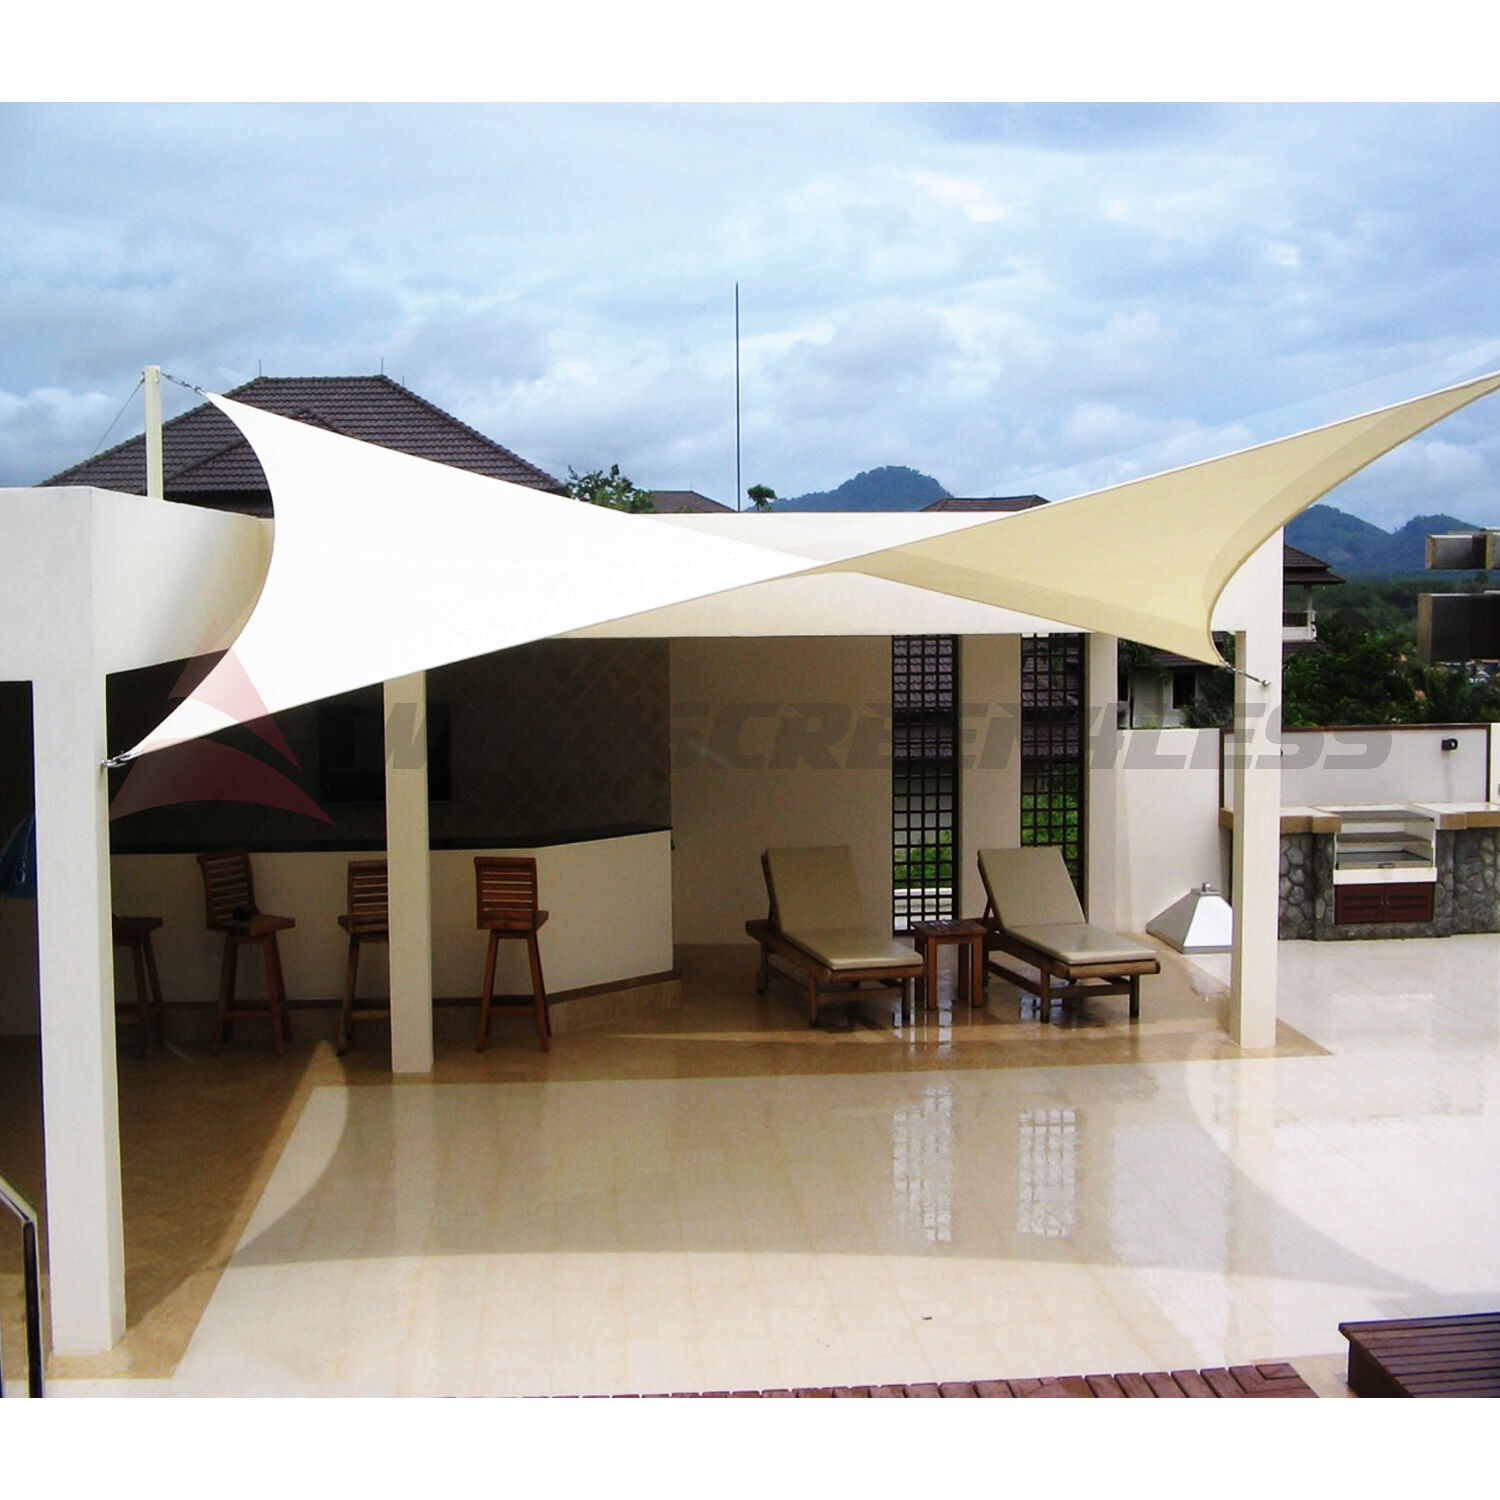 sun shade sail fabric outdoor garden canopy patio pool awning cover 12 39 16 39 18 39 ebay. Black Bedroom Furniture Sets. Home Design Ideas